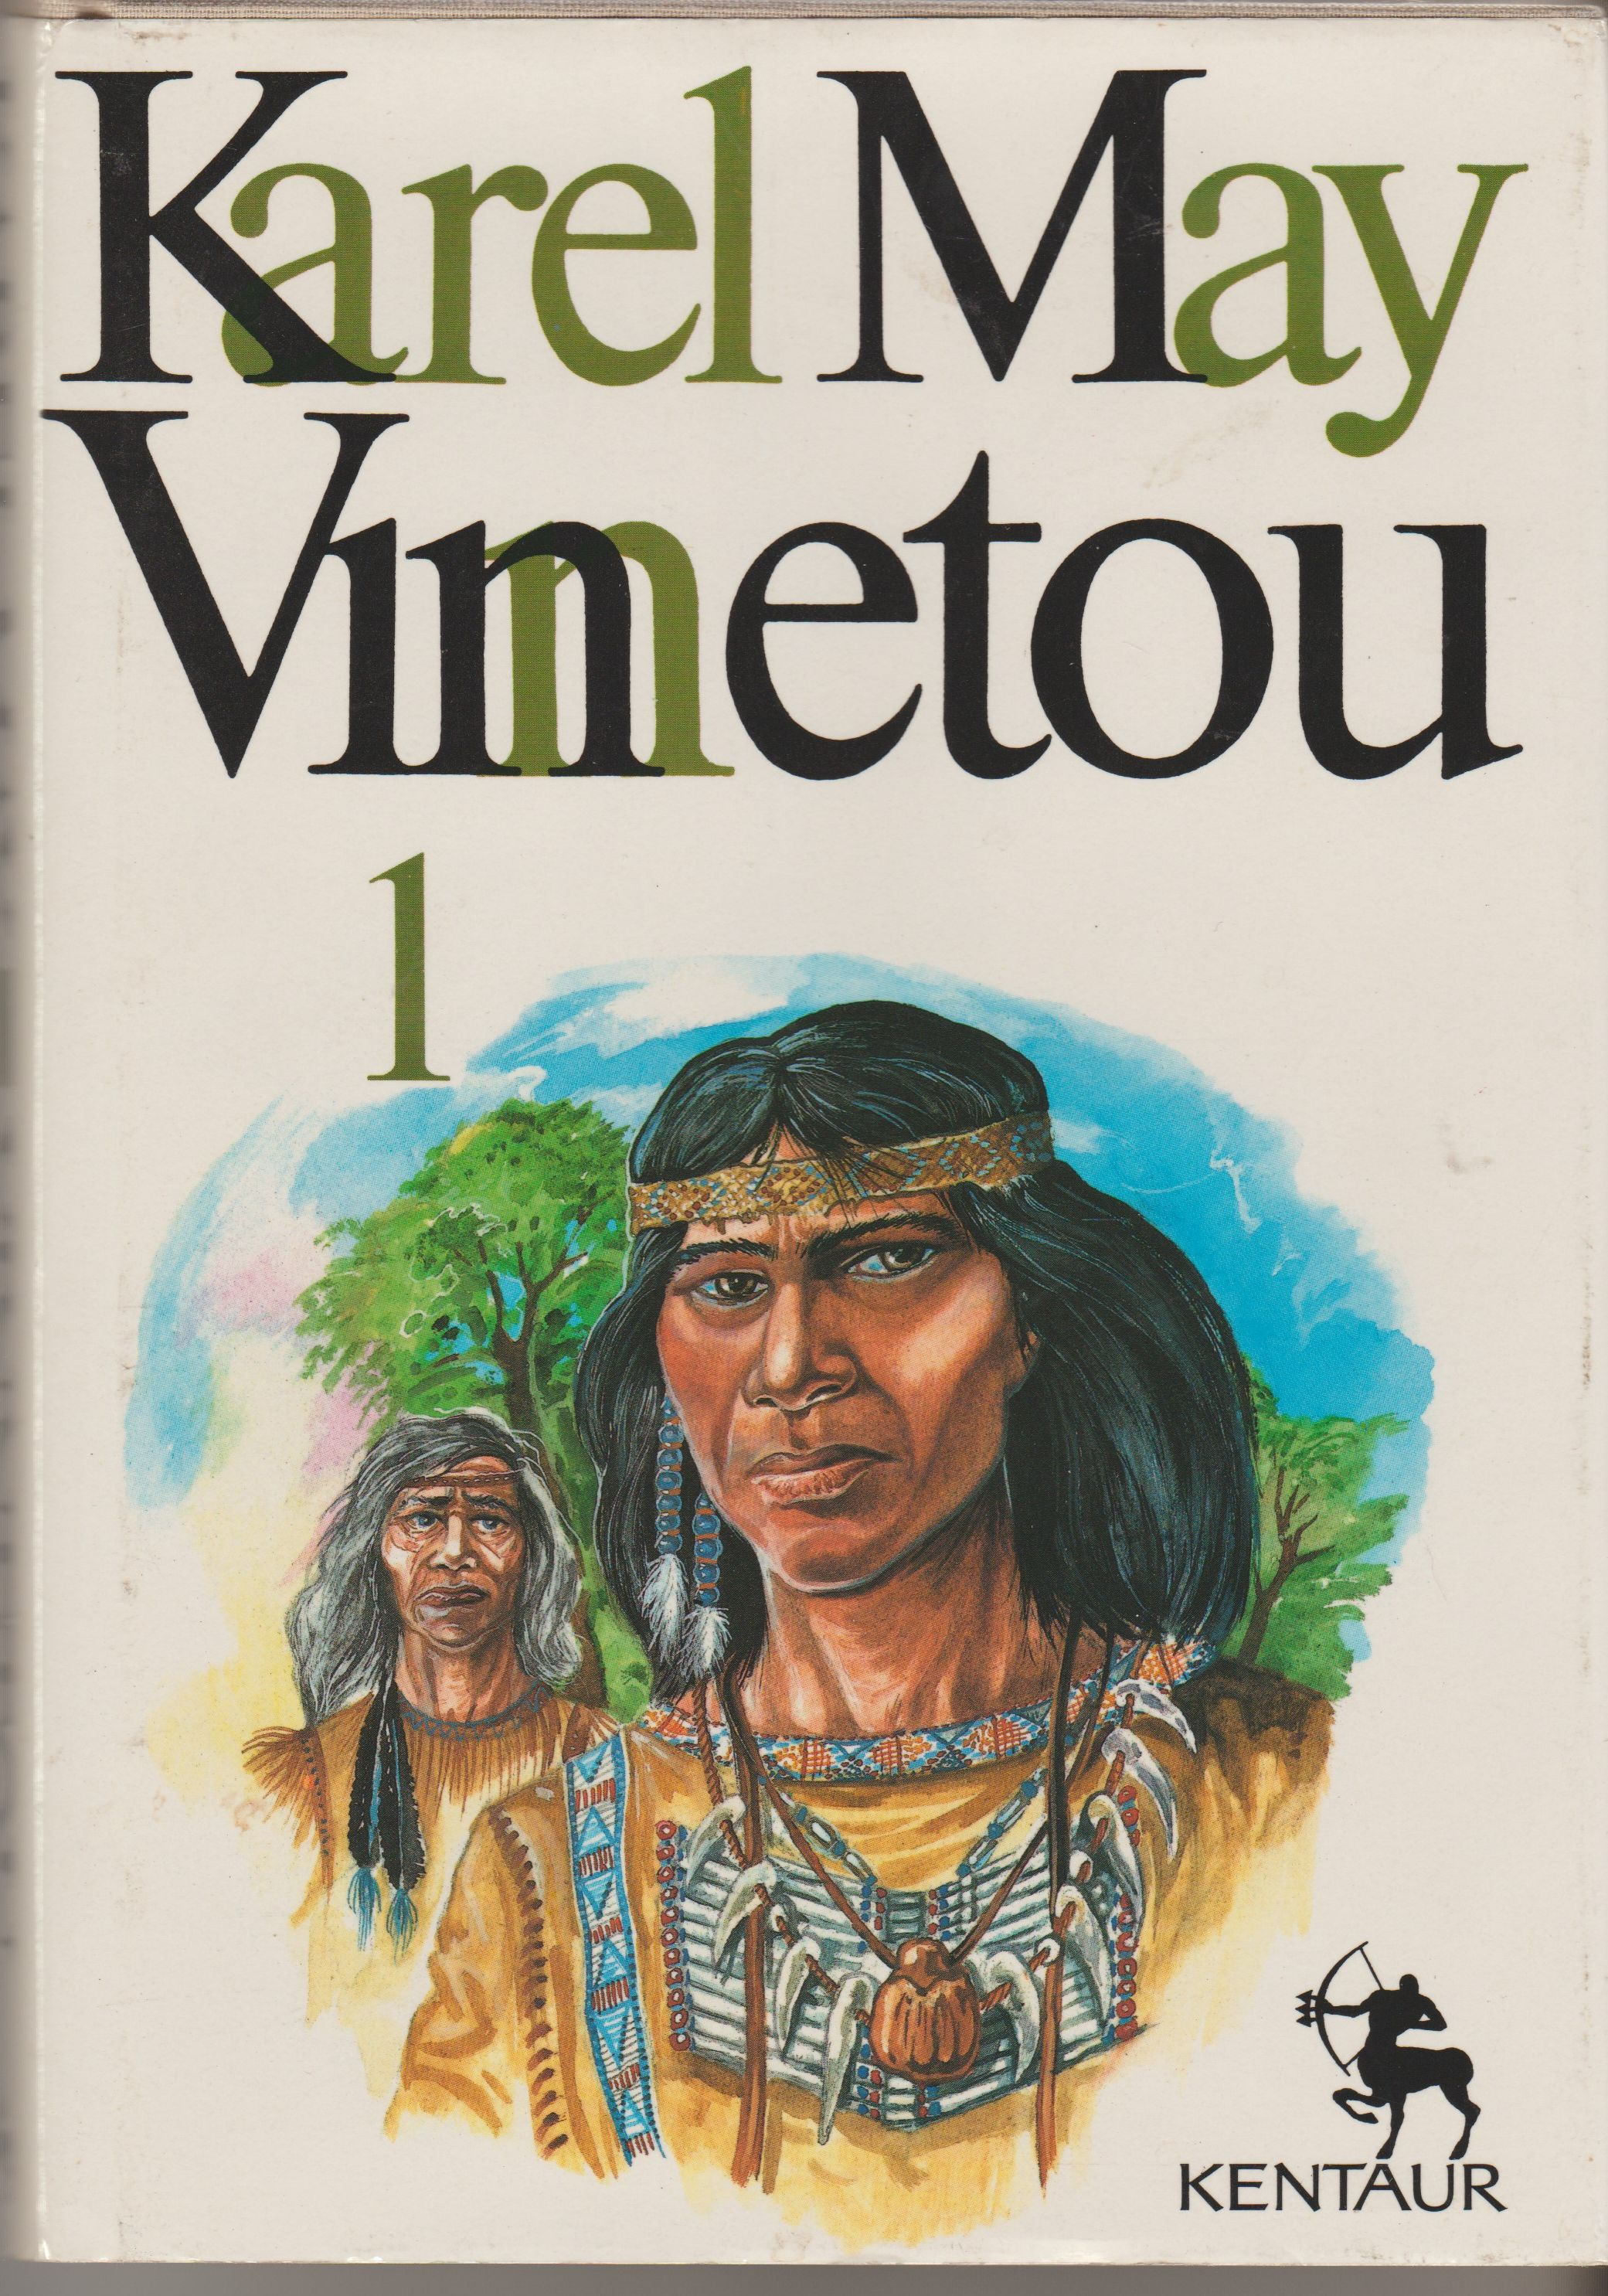 Vinnetou - Karel May